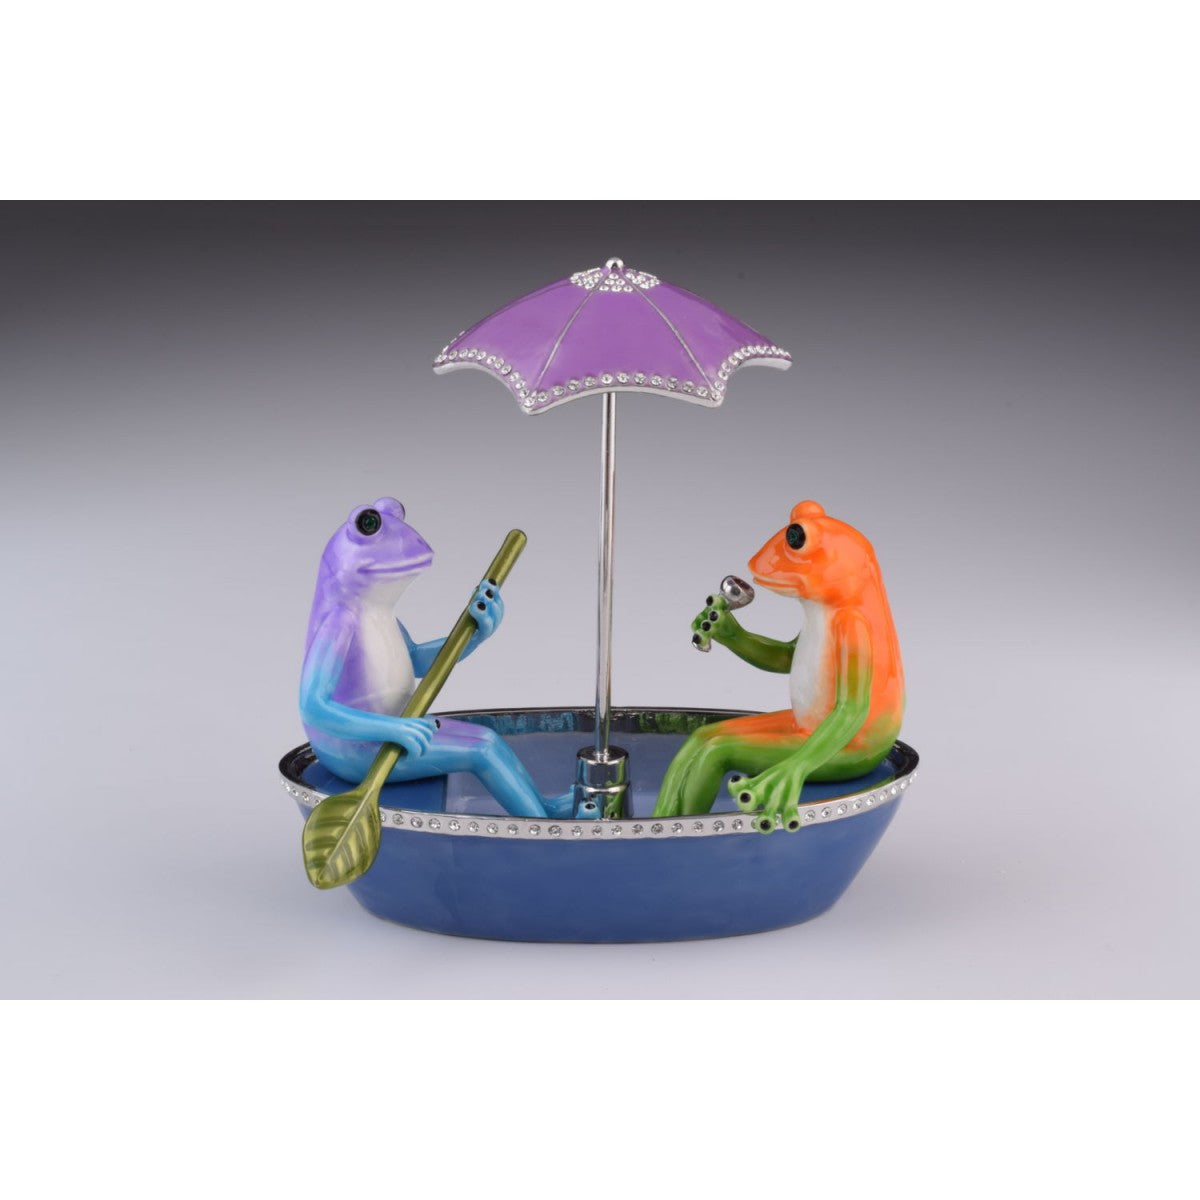 Two Frogs in a Boat